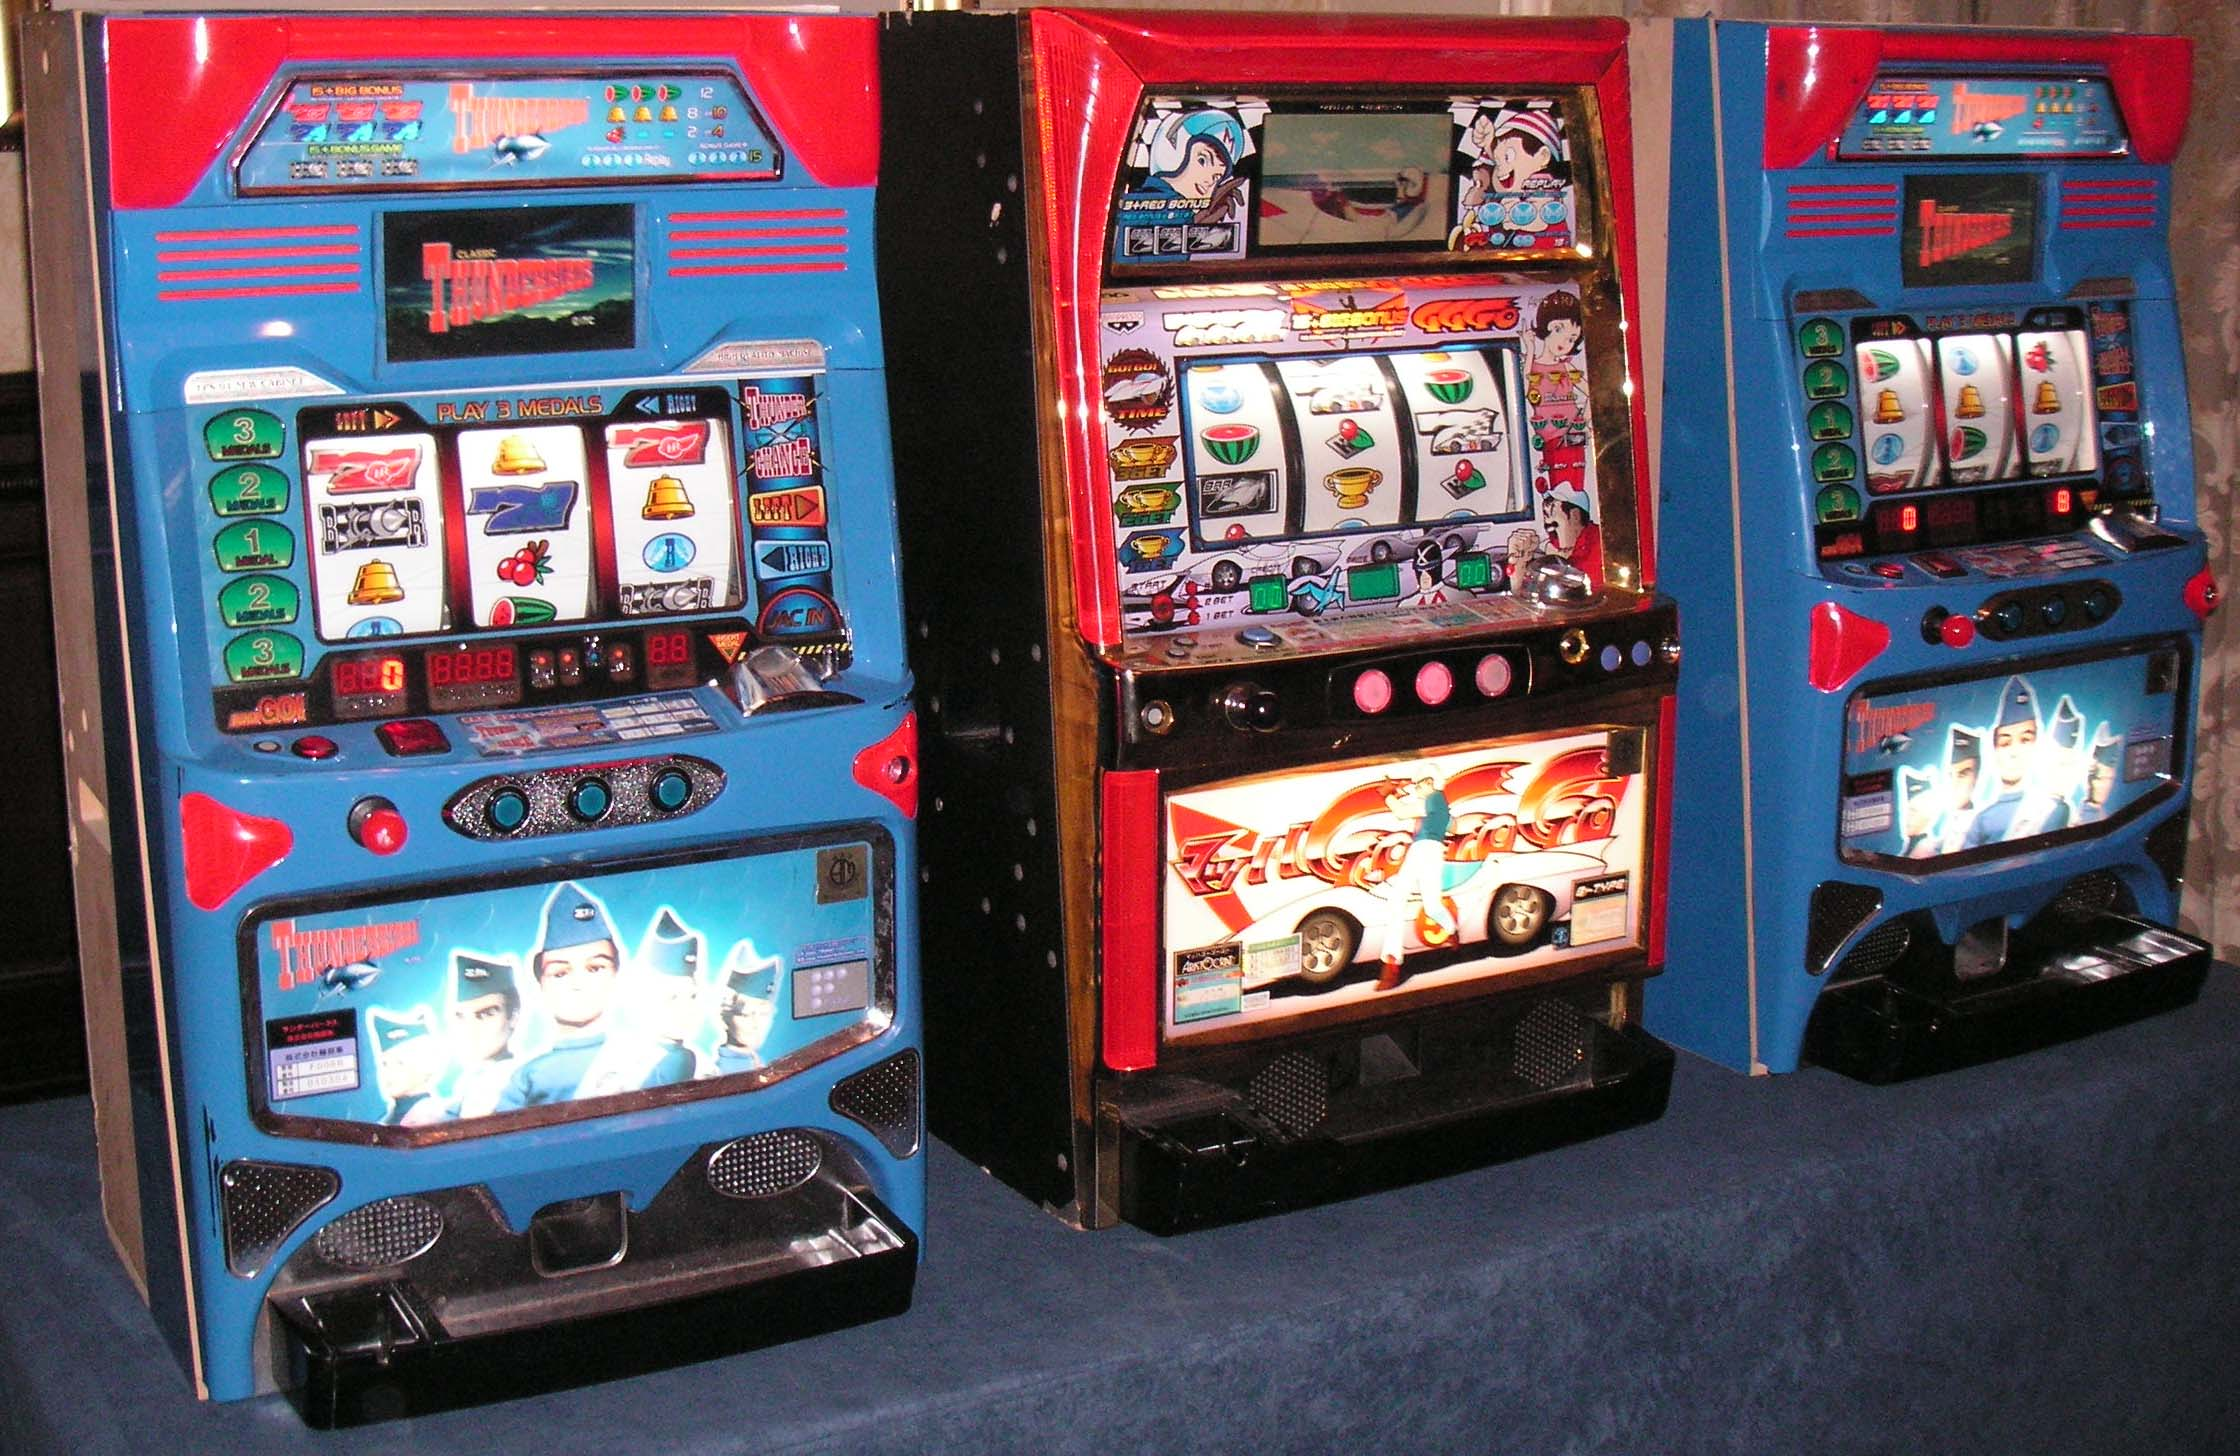 R Fun Casinos - Fun Slots -  Areas we cover for Fun Casino Hire include Lancashire, Cumbria, Cheshire, Merseyside, Manchester, Yorkshire, Lancaster, Leeds, Kendal, Windemere, Barrow-in-furness, Carslile, Preston, Blackpool, Wigan, Bolton, Blackburn and all surrounding areas. Call us for more info.